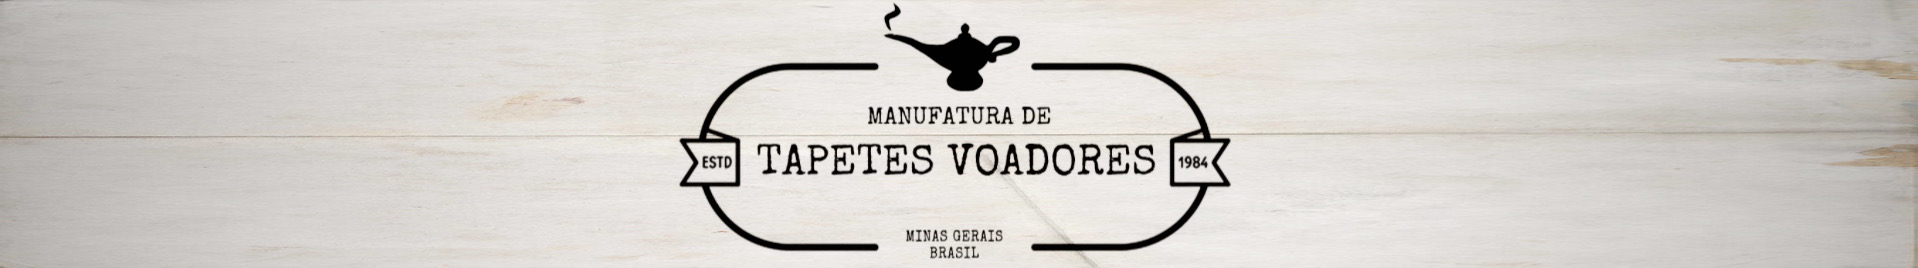 lucotinha 